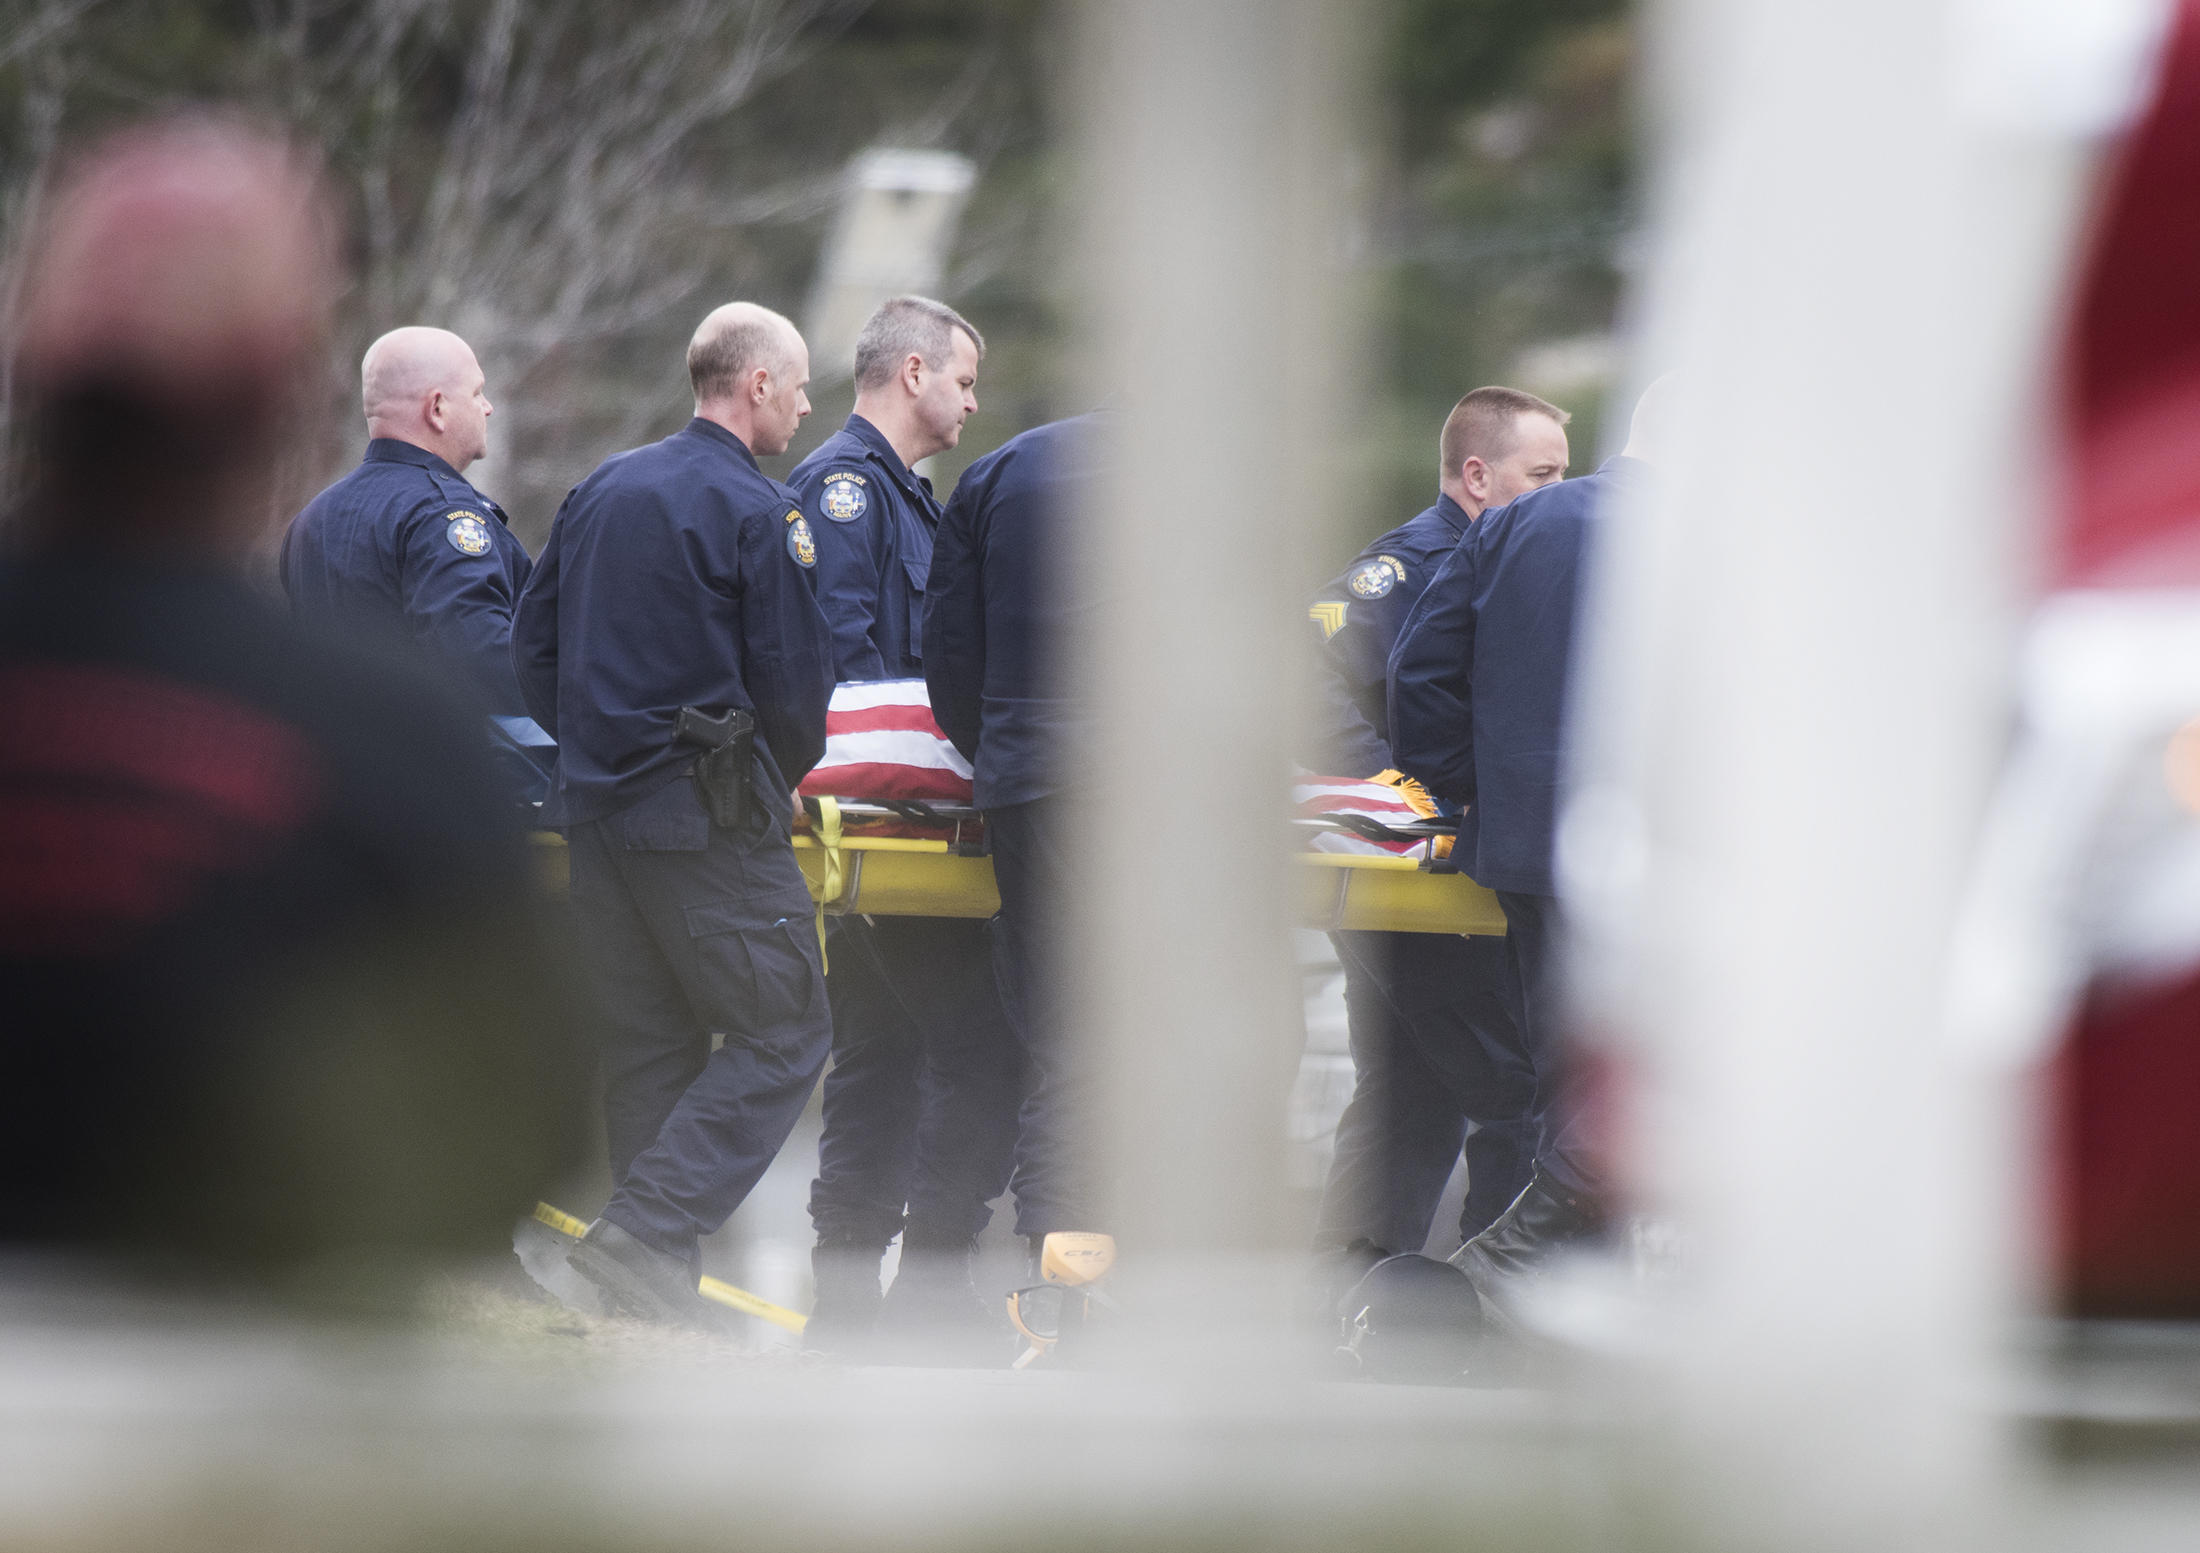 The body of Somerset County Sheriff's Deputy Eugene Cole is brought out and loaded into a medical examiner's van on Wednesday, April 25, 2018. Photo by Kevin Bennet for Maine Public